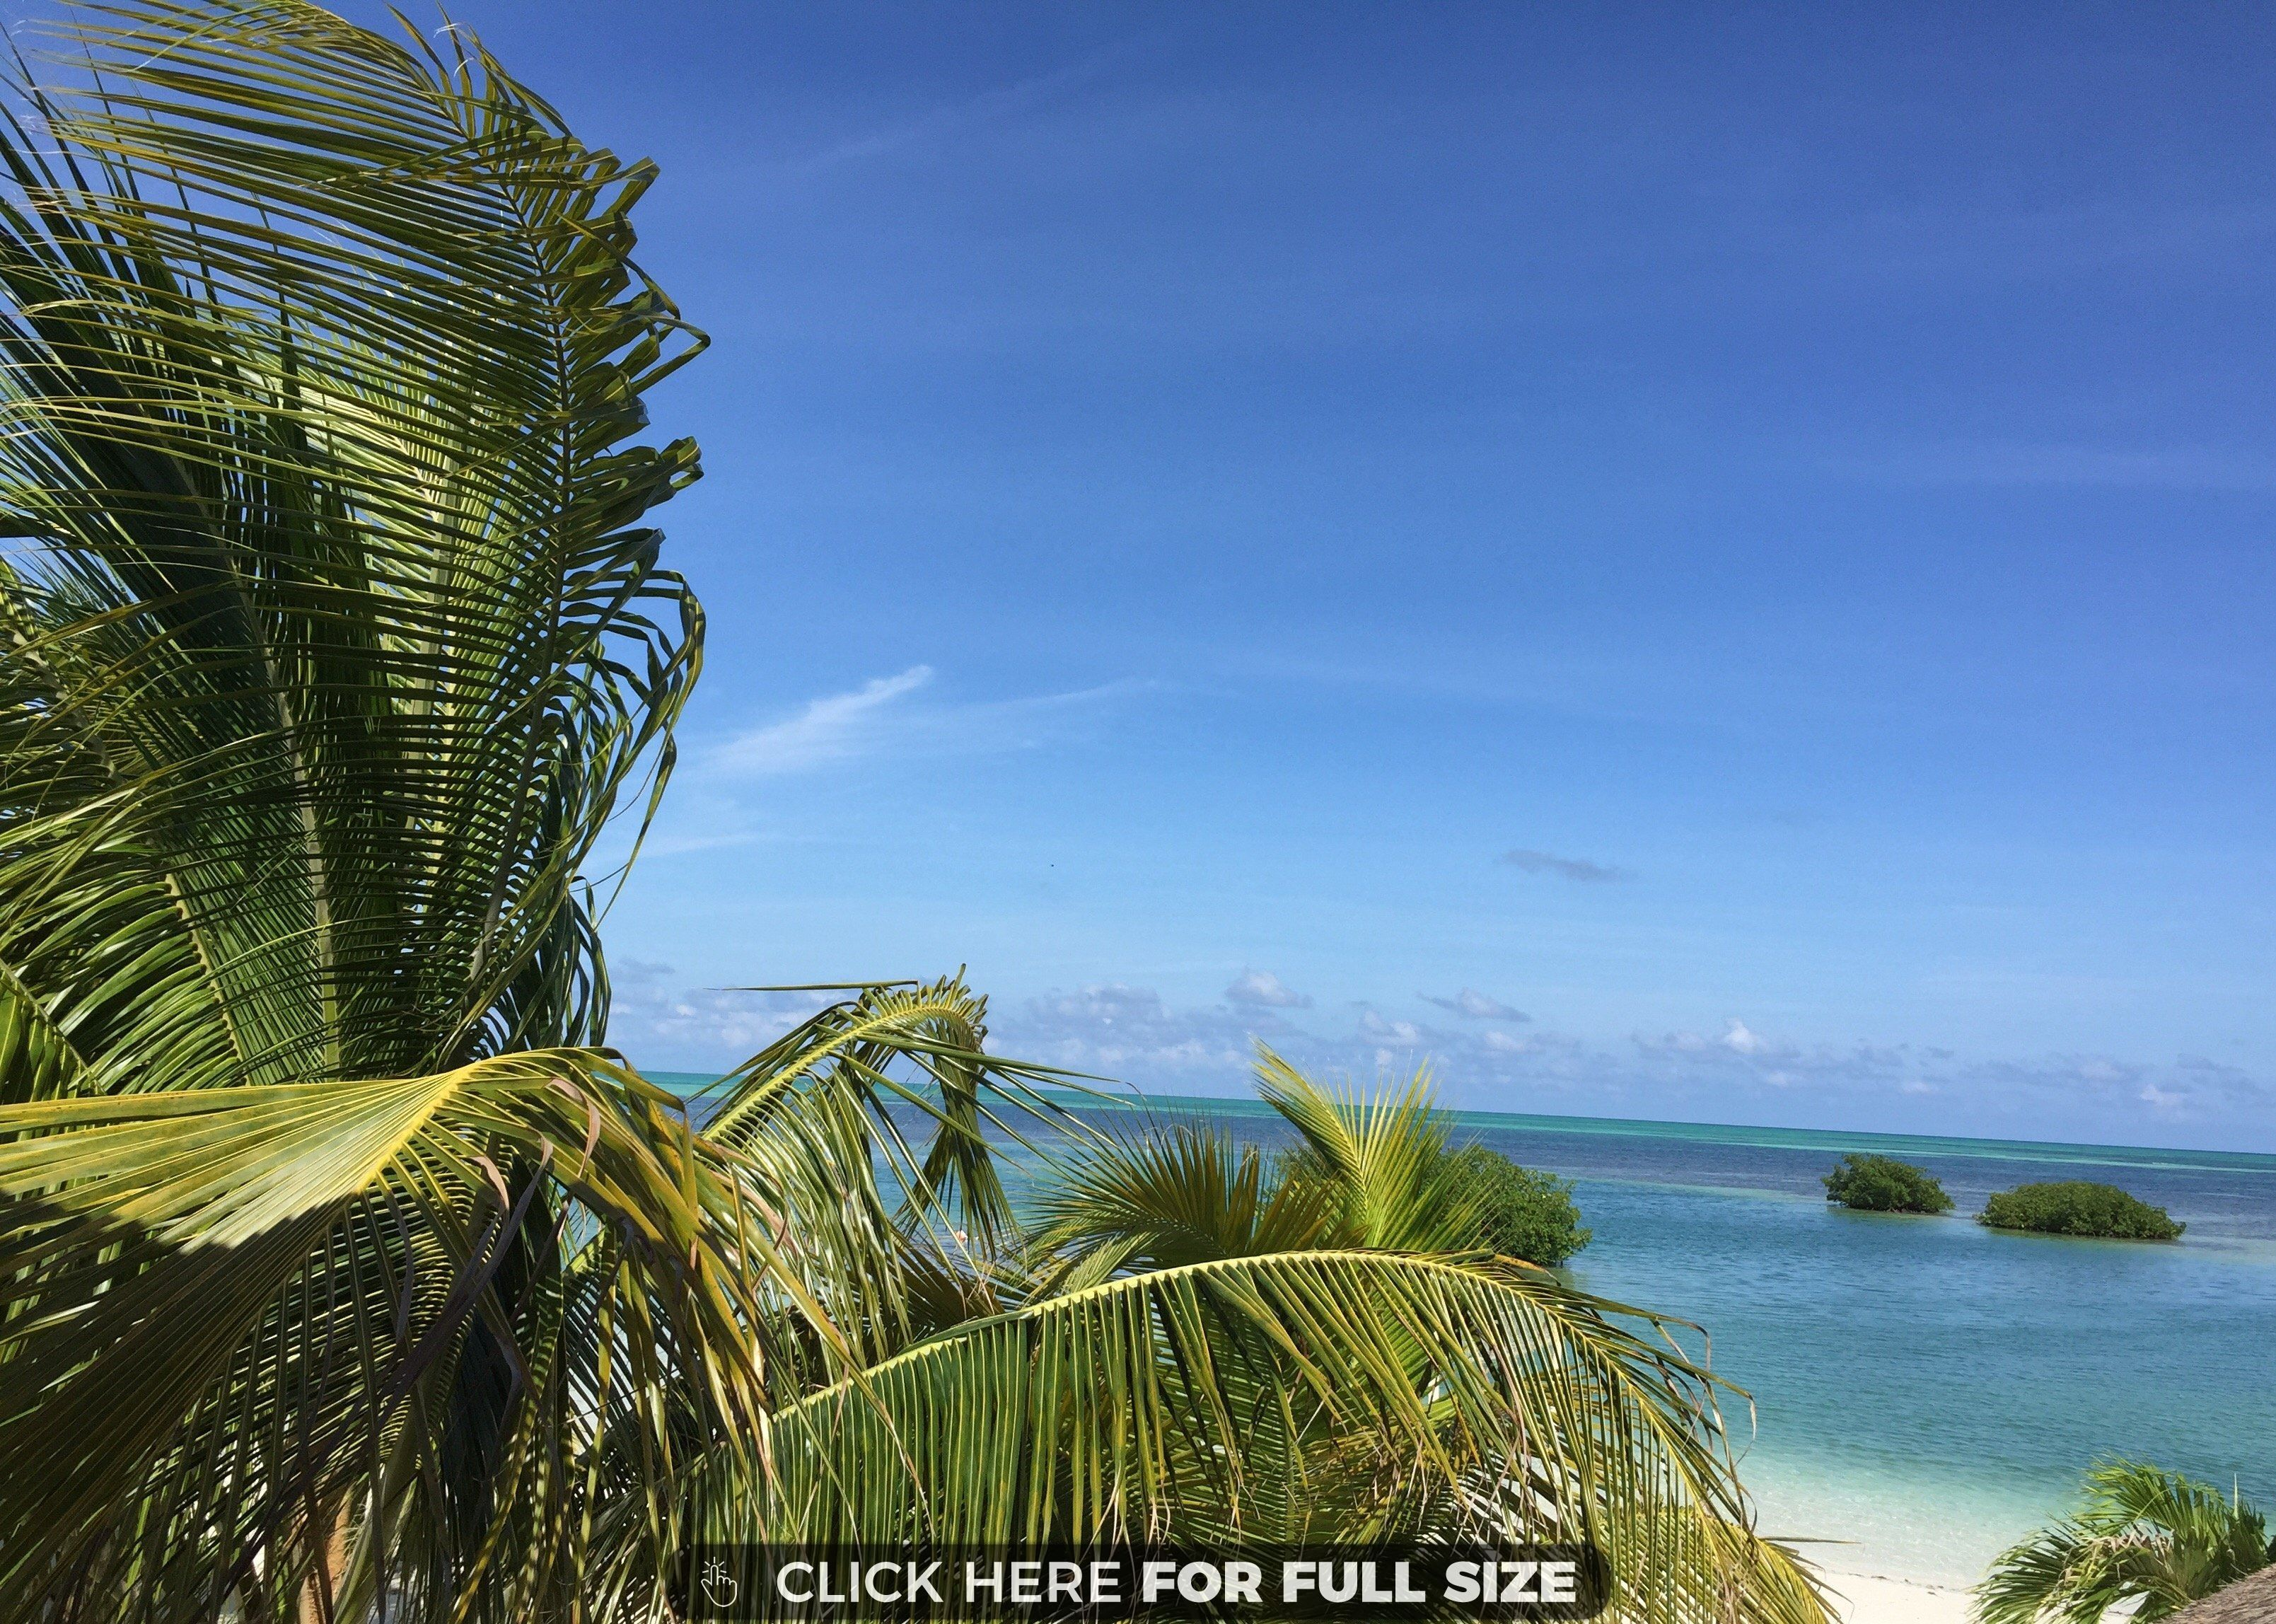 belize wallpapers, photos and desktop backgrounds up to 8K